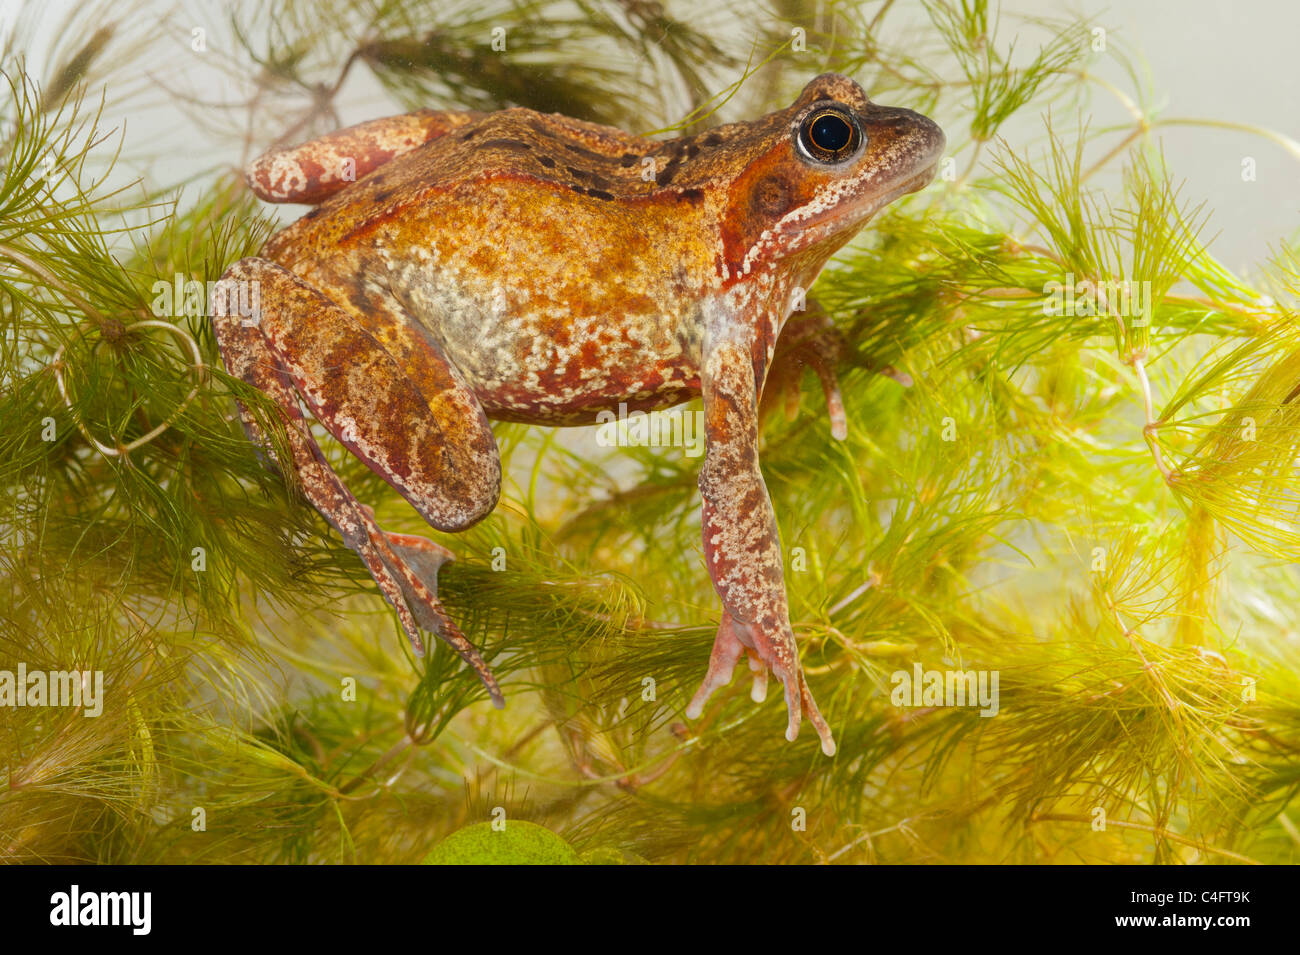 A Common Frog ( Rana temporaria ) swimming in an aquarium in the Uk - Stock Image